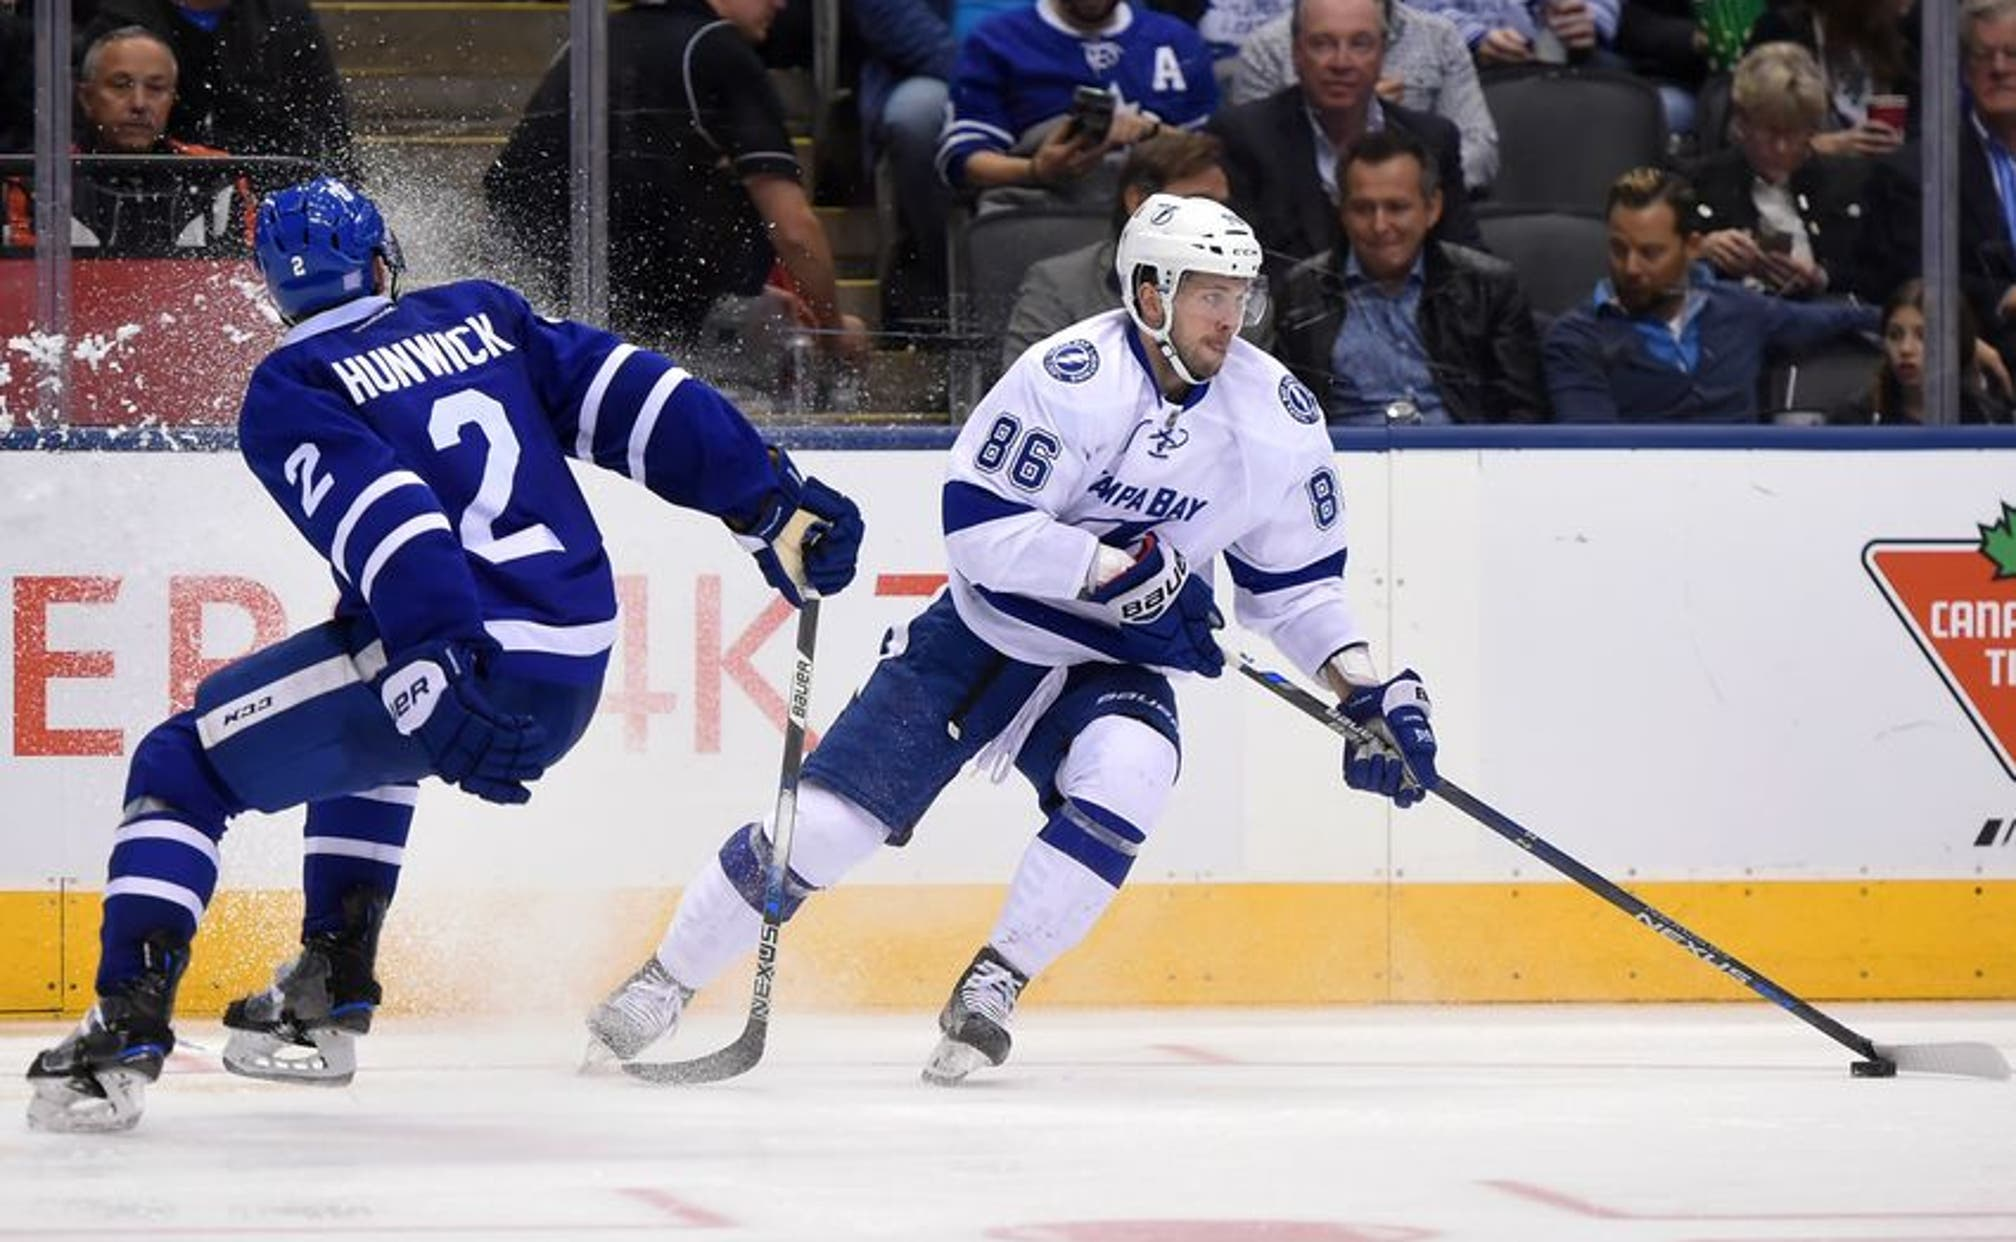 Tampa Bay Lightning Vs Toronto Maple Leafs Live Thread For Game No 37 Fox Sports